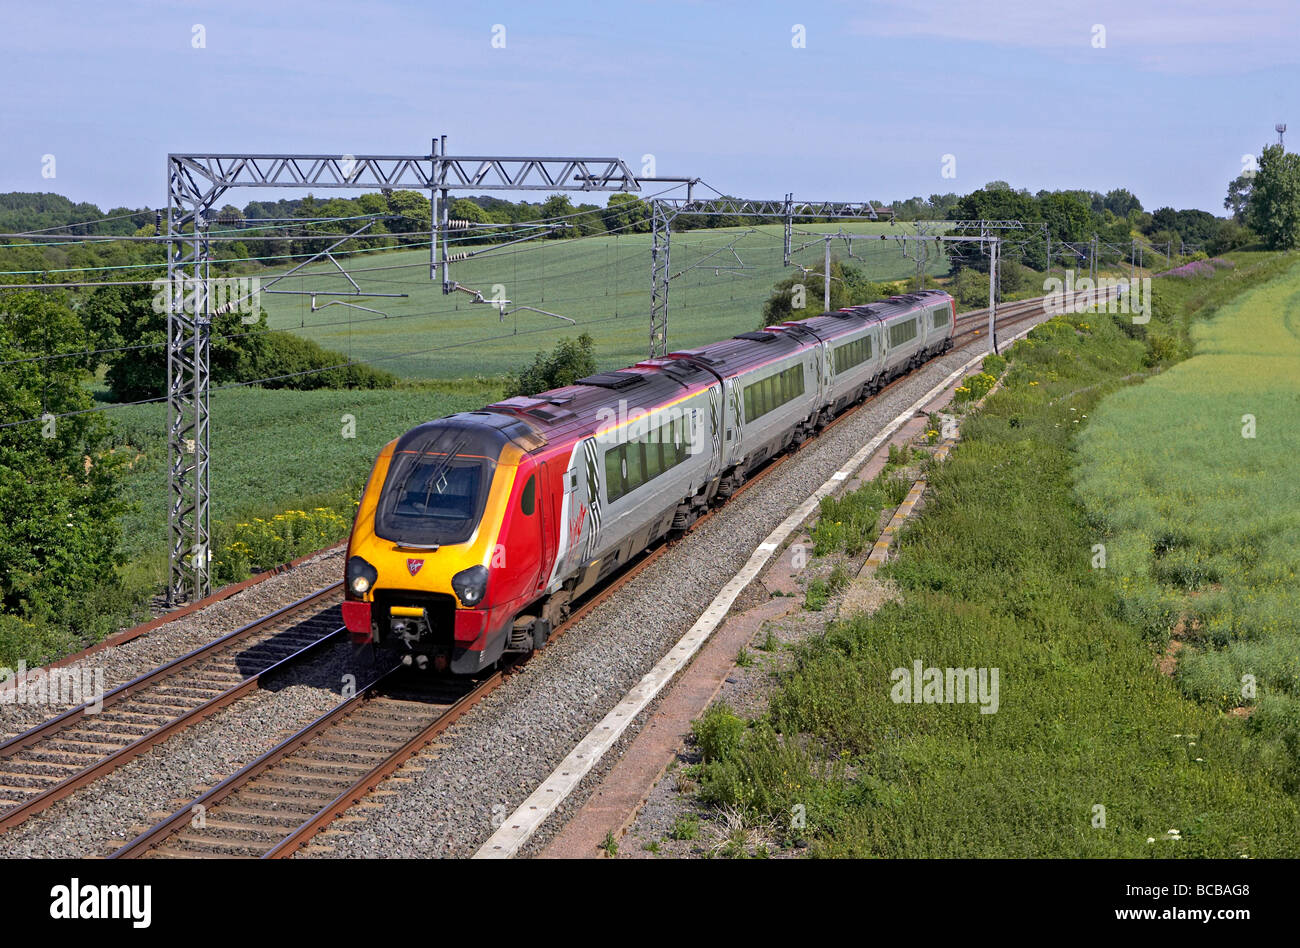 Virgin West Coast Voyager passes Blisworth Northamptonshire with a Euston New Street service on 01 07 09 - Stock Image